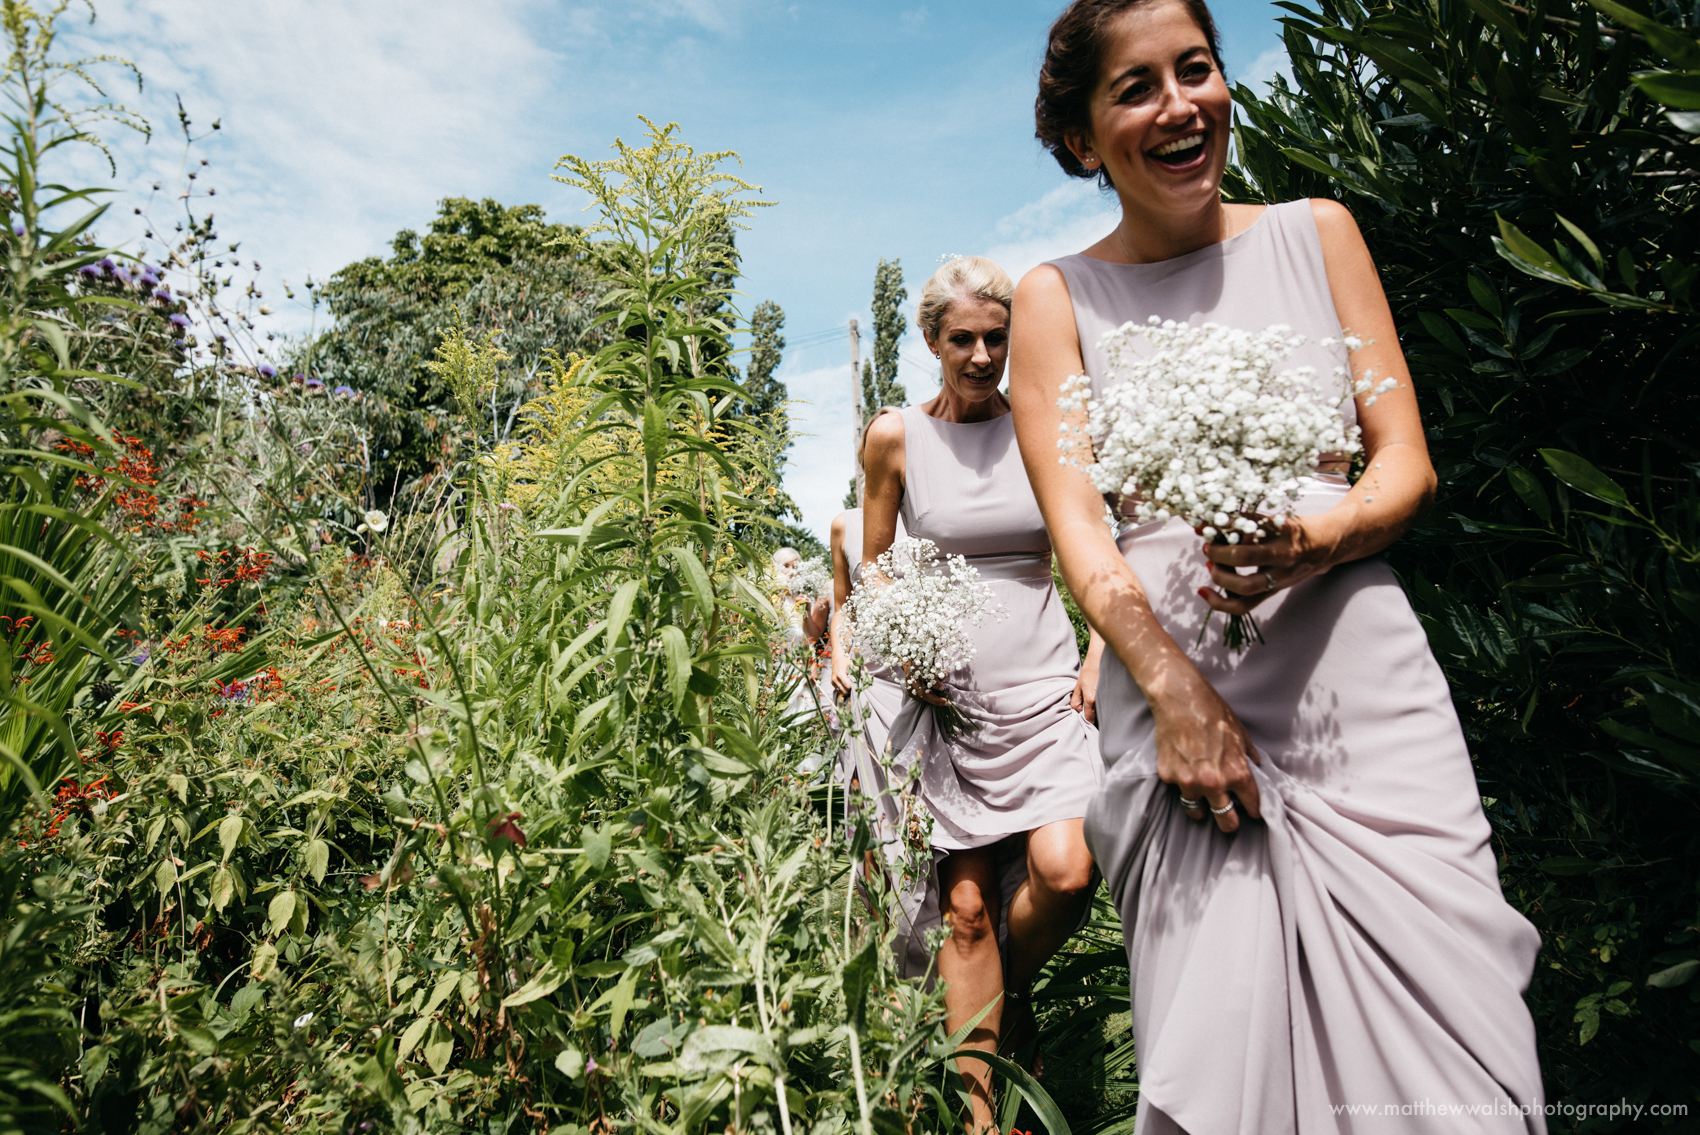 A bit of an adventure as the bridal party fight their way through the flowers